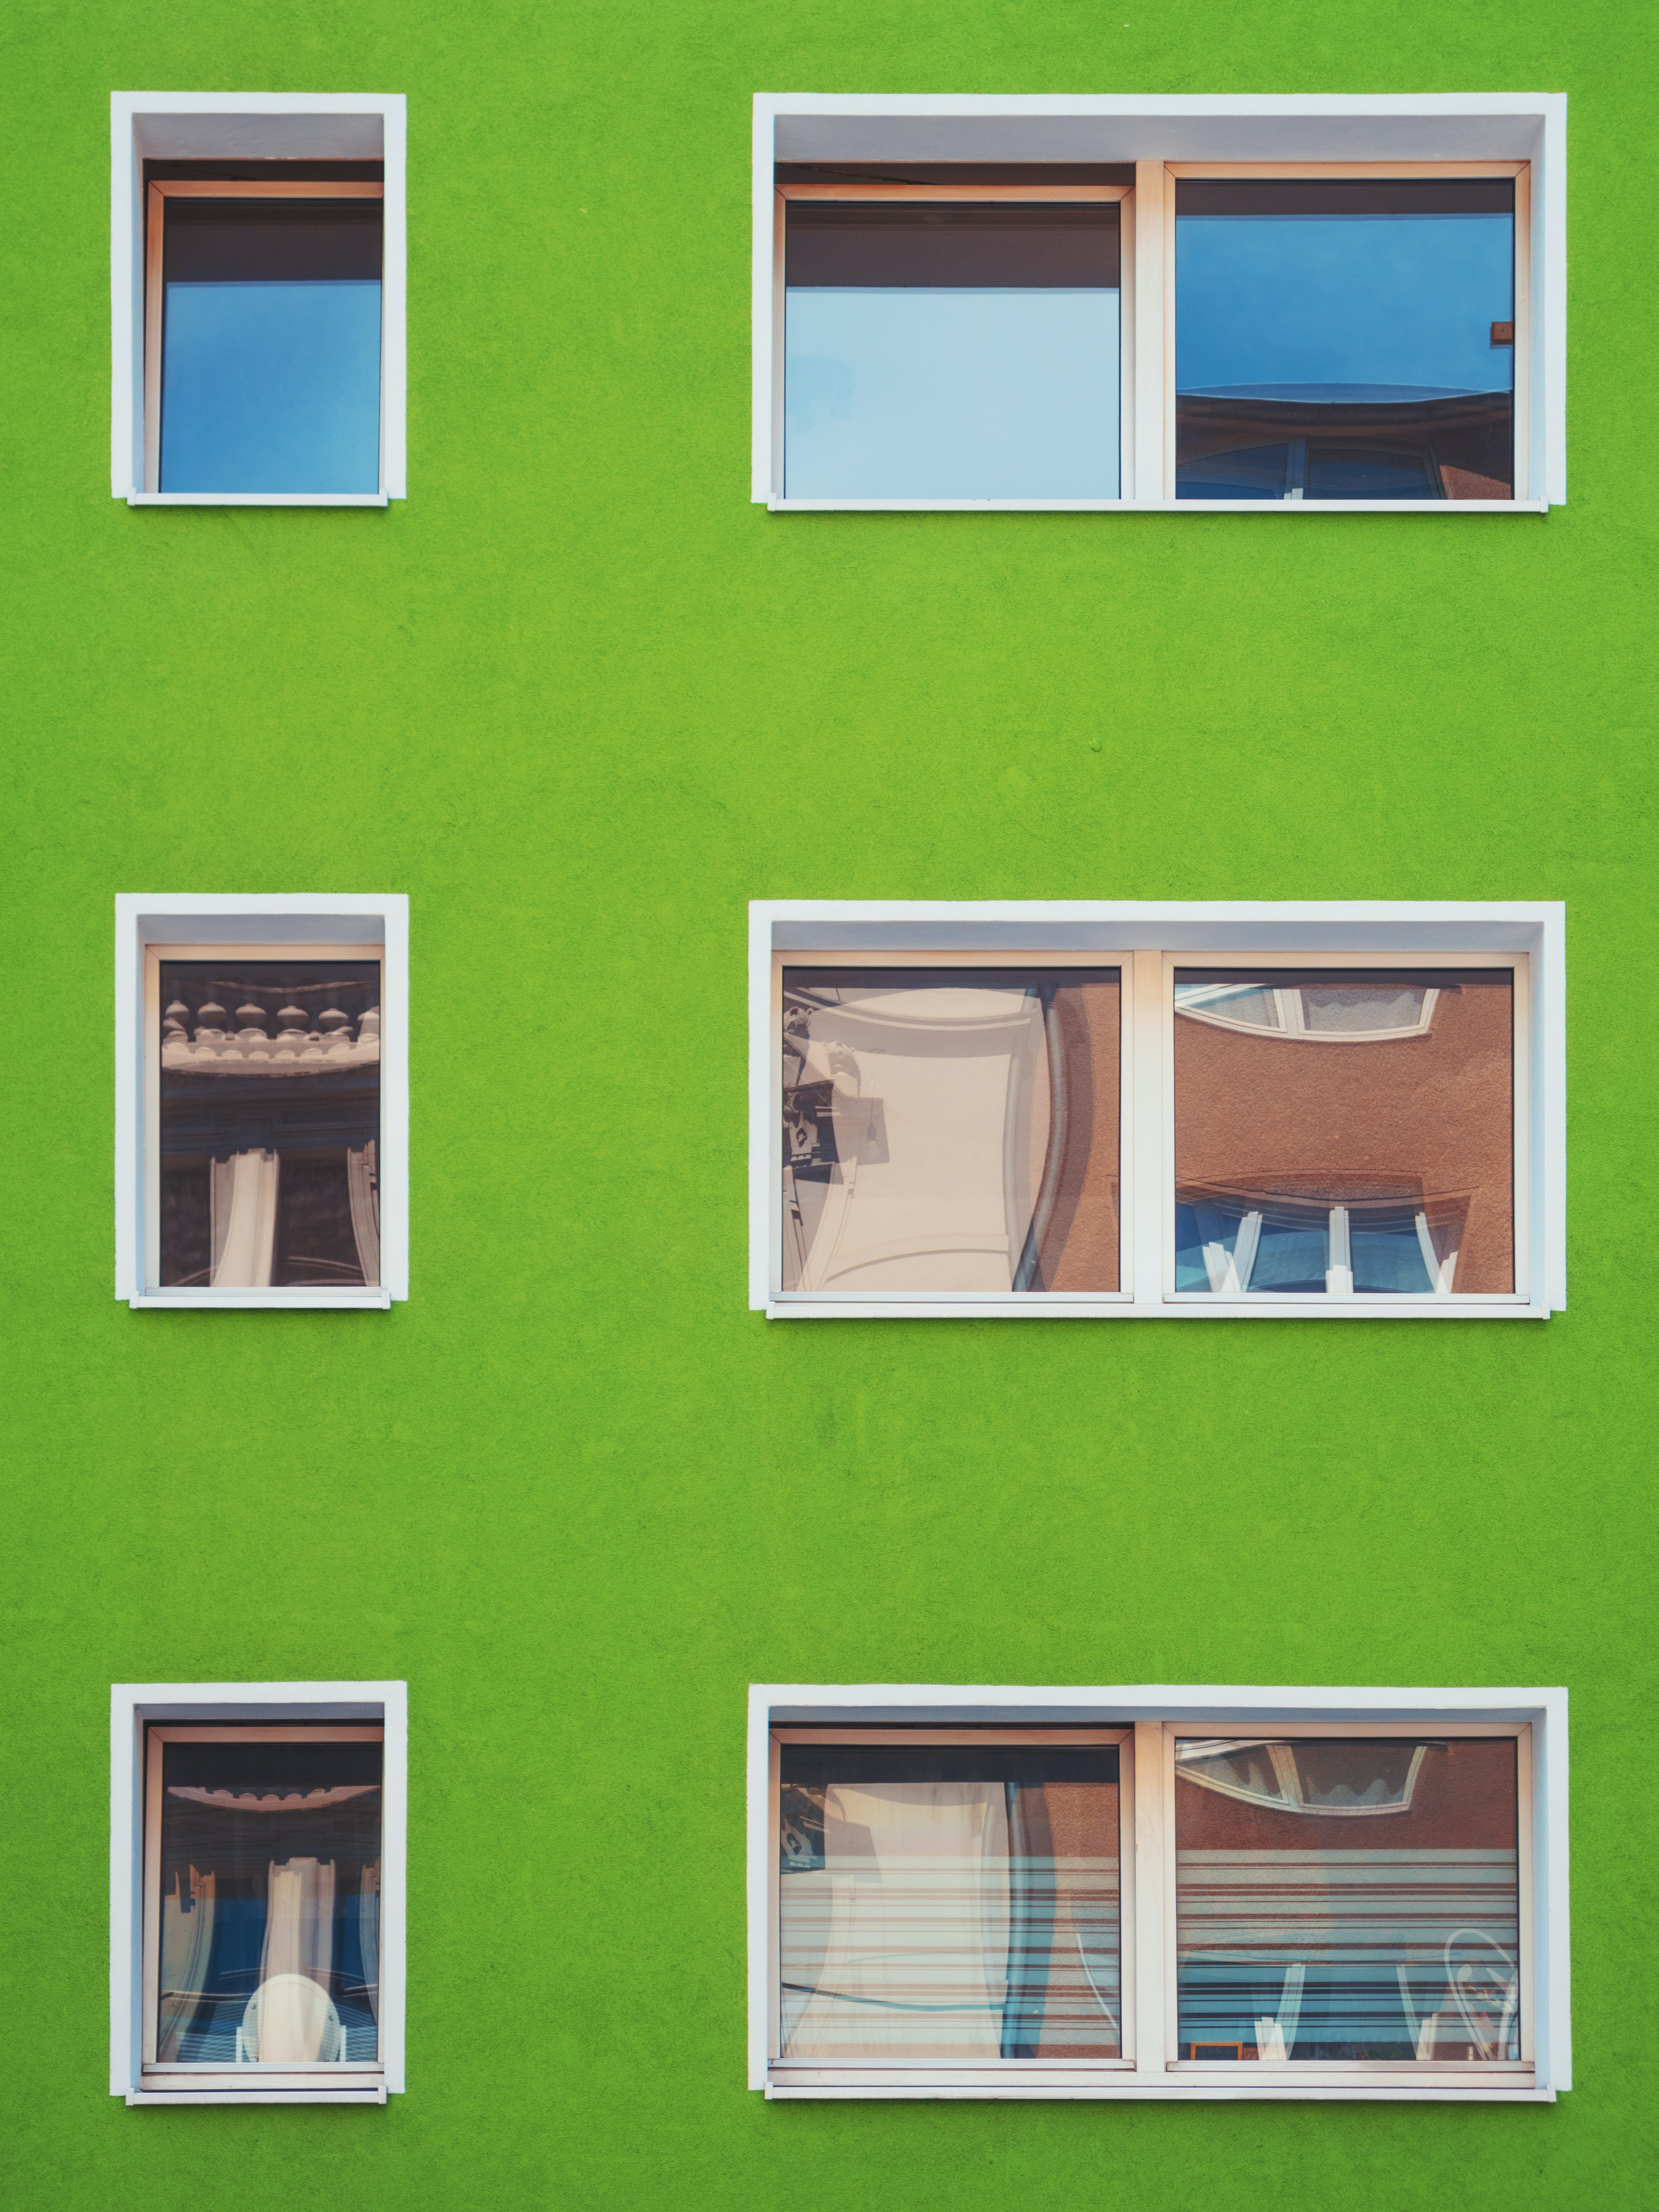 Small windows in a green wall of a residential building in Cologne